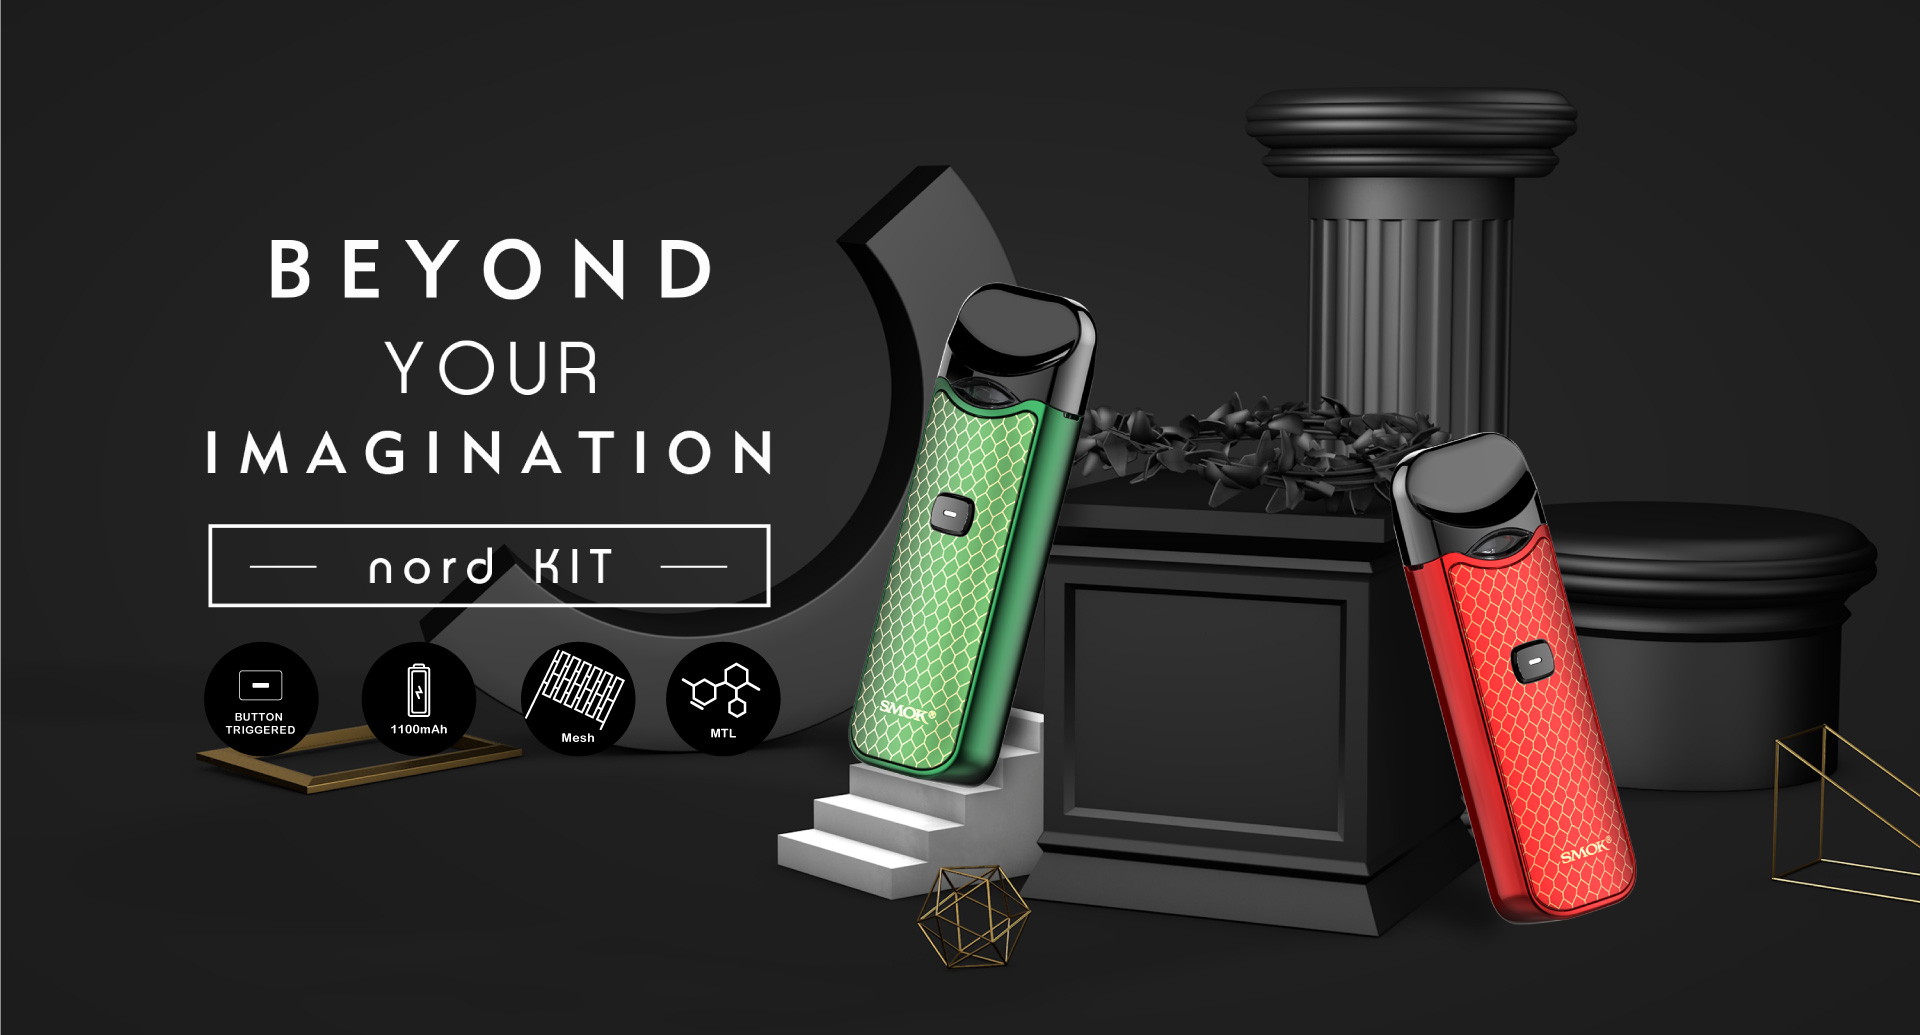 A pod system that combines sub-ohm vaping with regular MTL experience – It's Nord Kit by Smok™